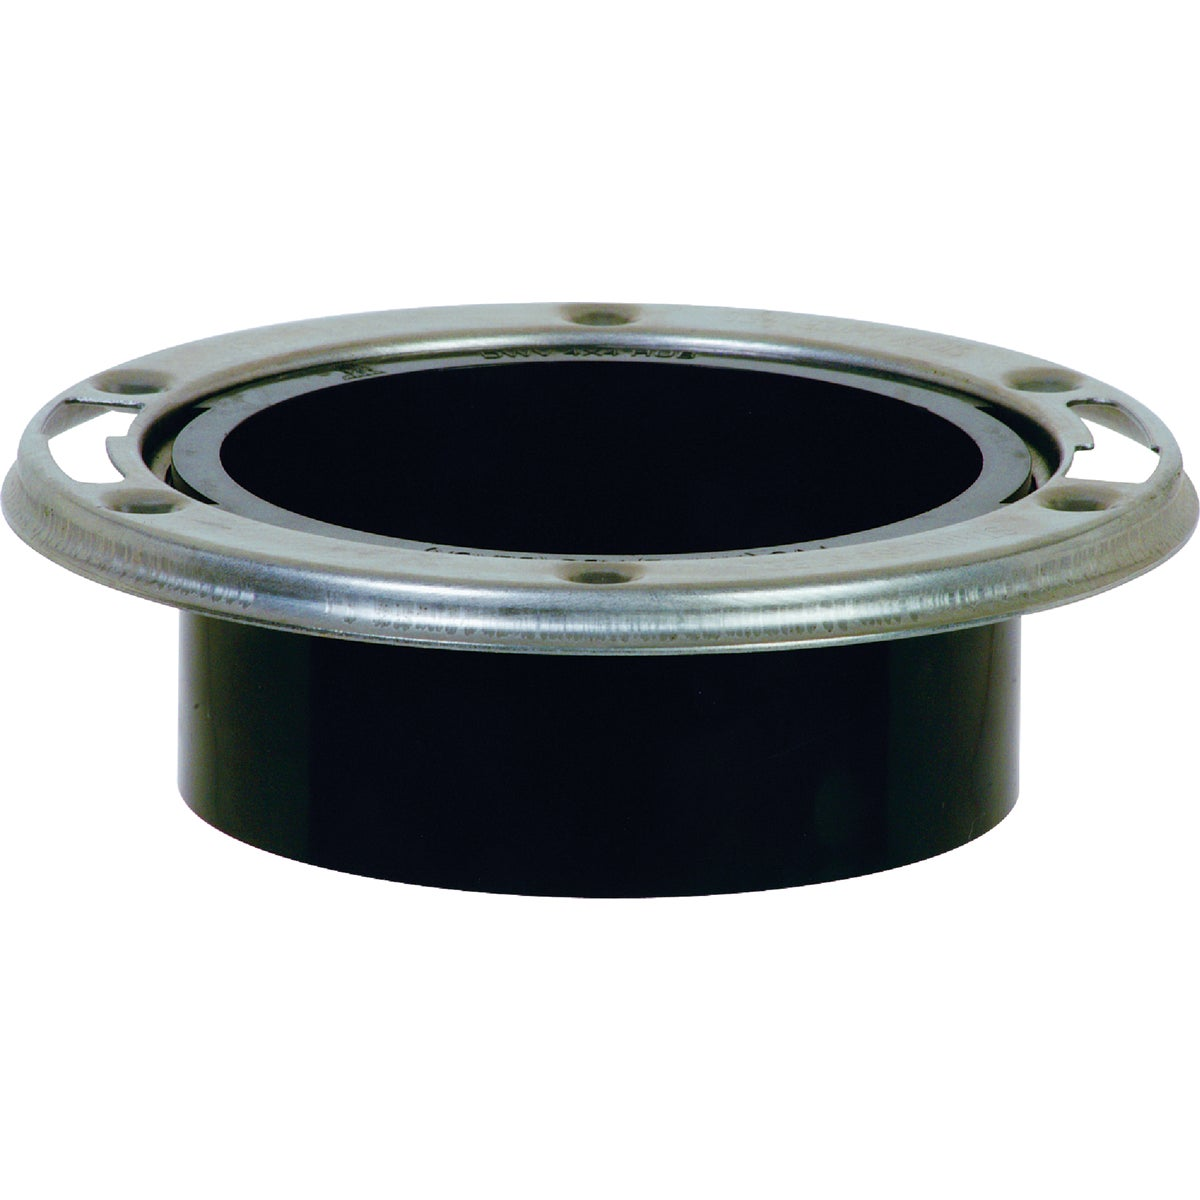 "4"" ABS CLOSET FLANGE - 85164 by Sioux Chief Mfg"